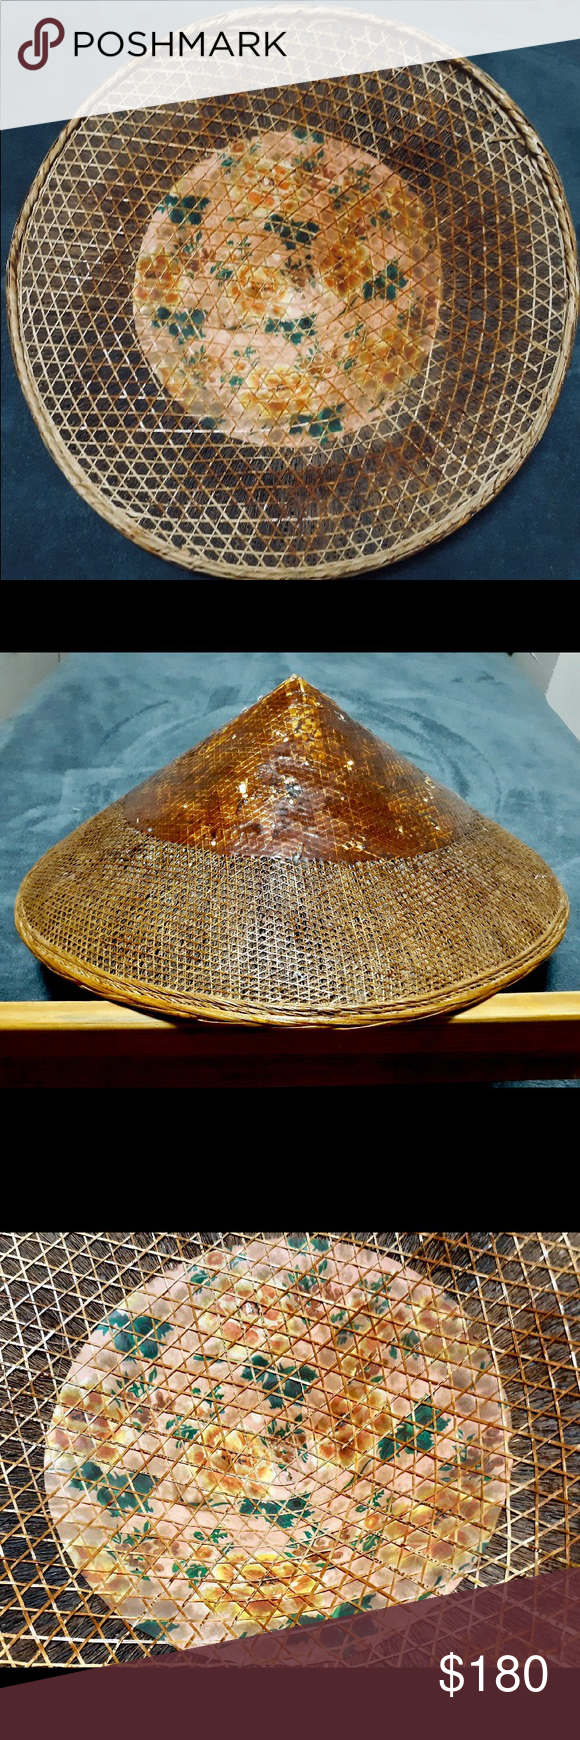 Vintage Asian 1900s Eve Paddy Bamboo Straw Hats Hats Vintage Straw Hat Vintage